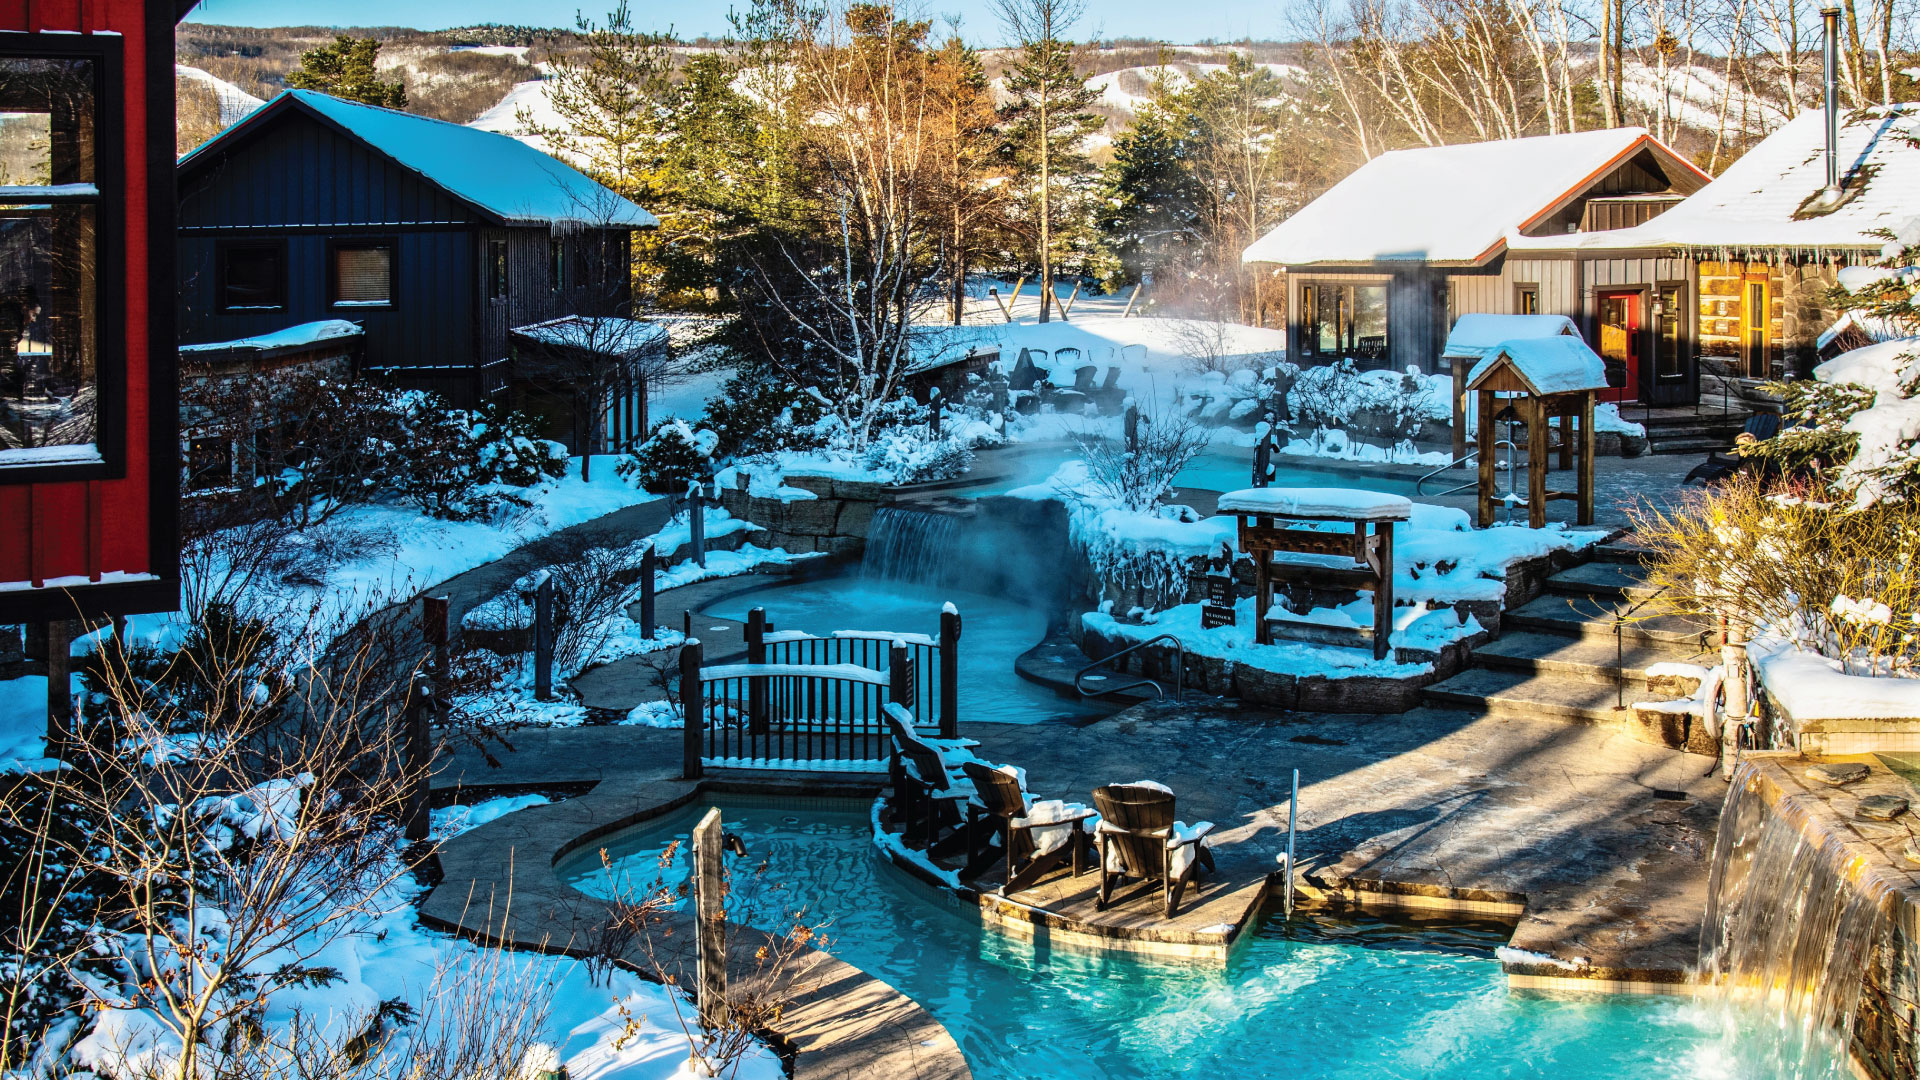 Sunny Winter day overlooking the Baths and Blue Mountain at Scandinave Spa